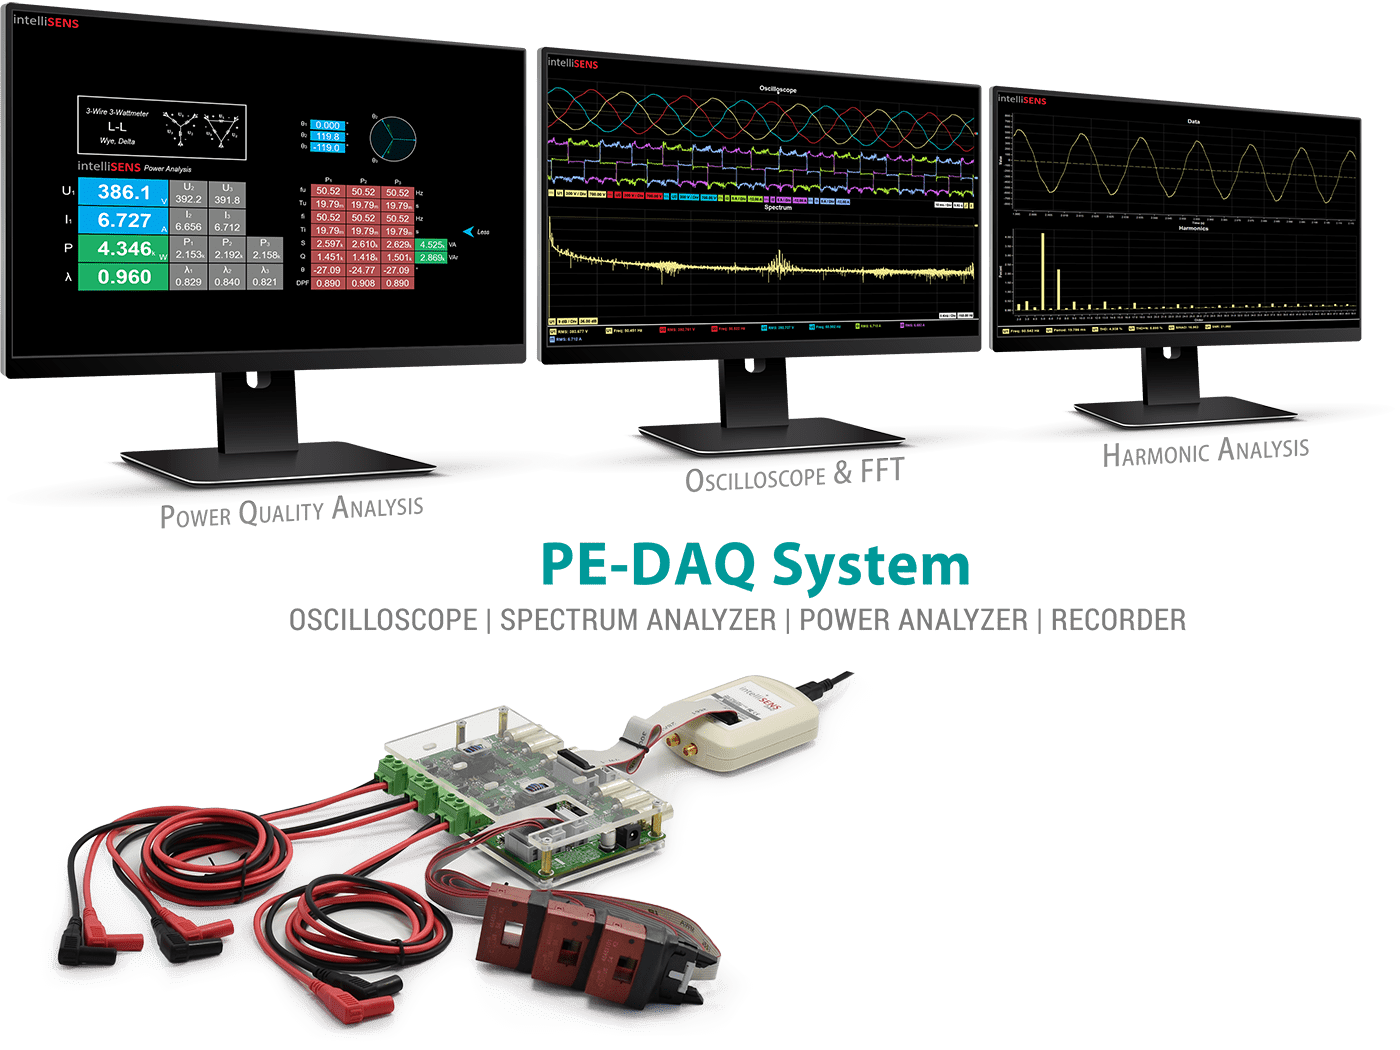 Power Electronics Measurement and DAQ System that can replace 3 phase power quality analyzer, oscilloscope & recorder